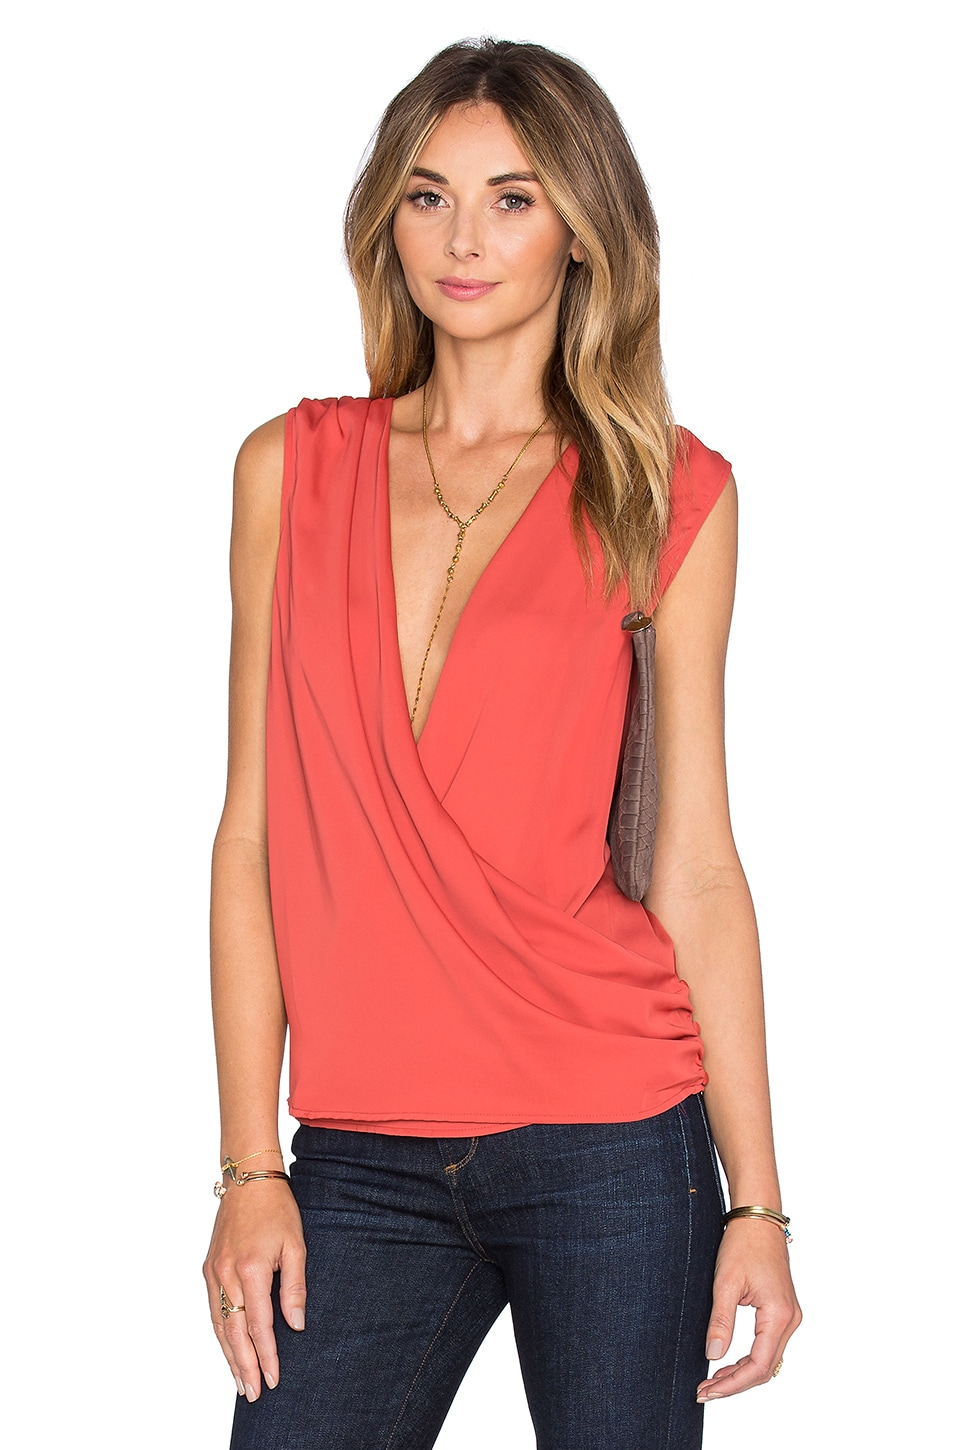 L'Academie The Wrap Blouse in Red Orange